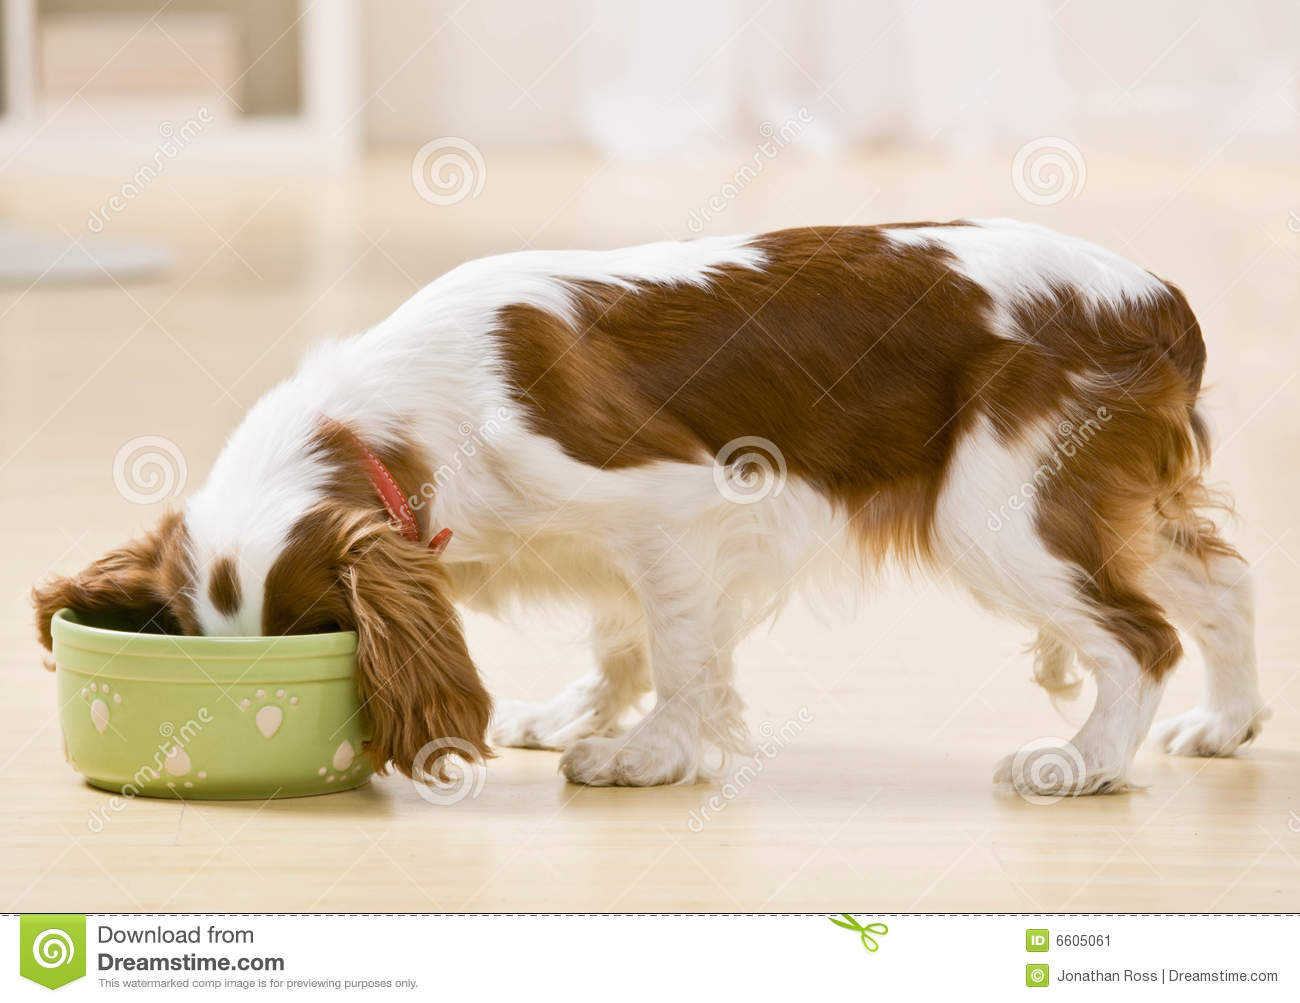 Puppy eating from dog dish